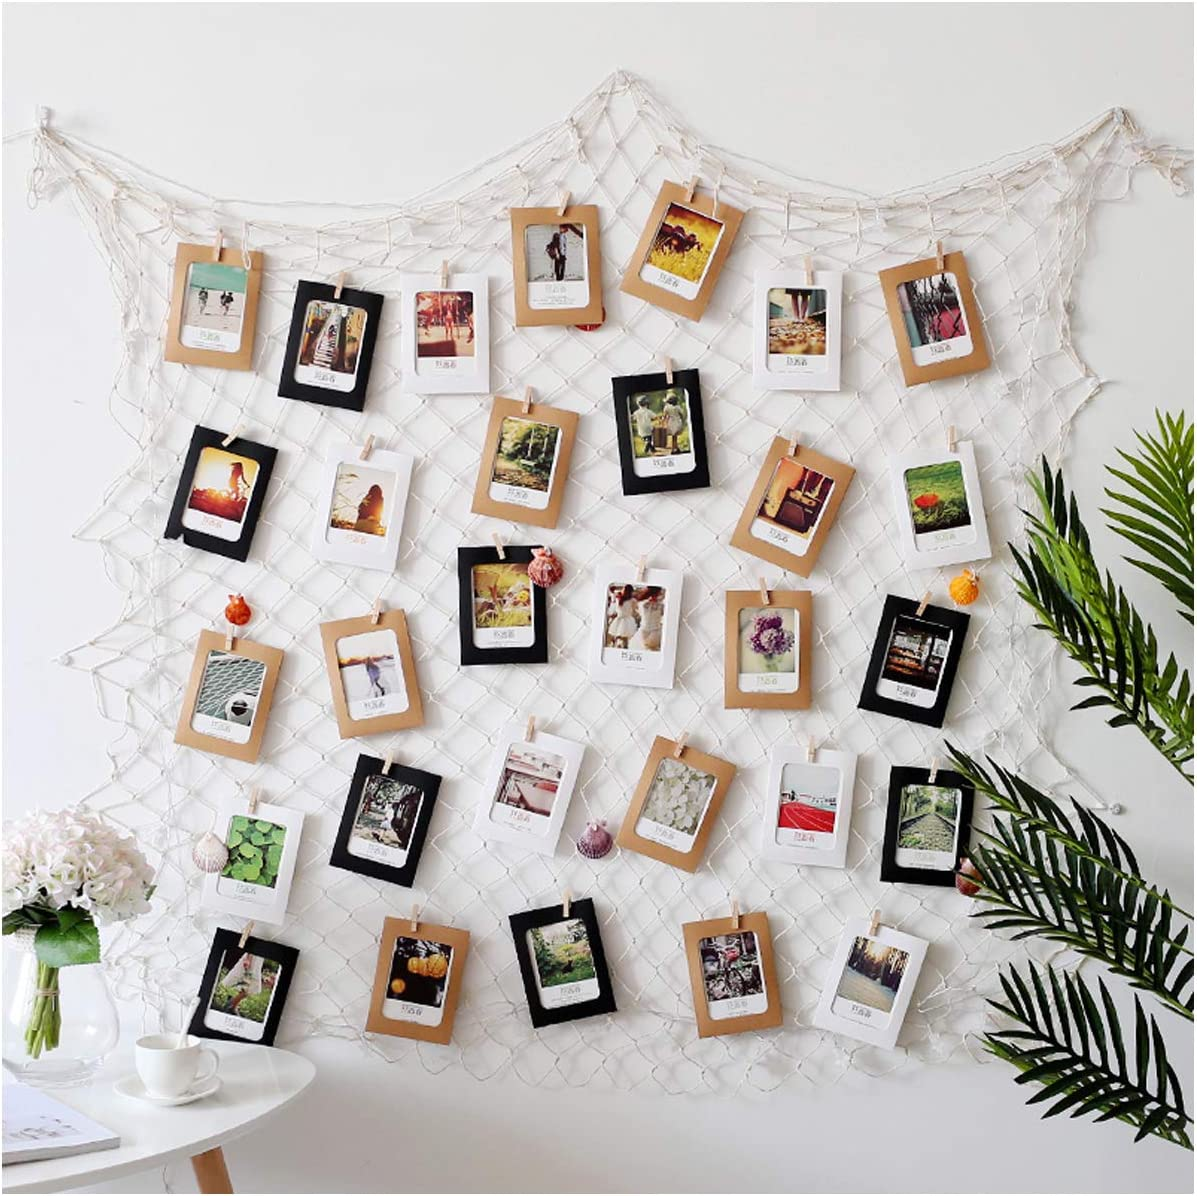 DGQ Photo Hanging Photo Display Frames 79 x 40inch DIY Picture Frames Collage Set Mediterranean Fishing Net Wall Decorations with 40 Clips for Hanging Photos, Prints and Artwork